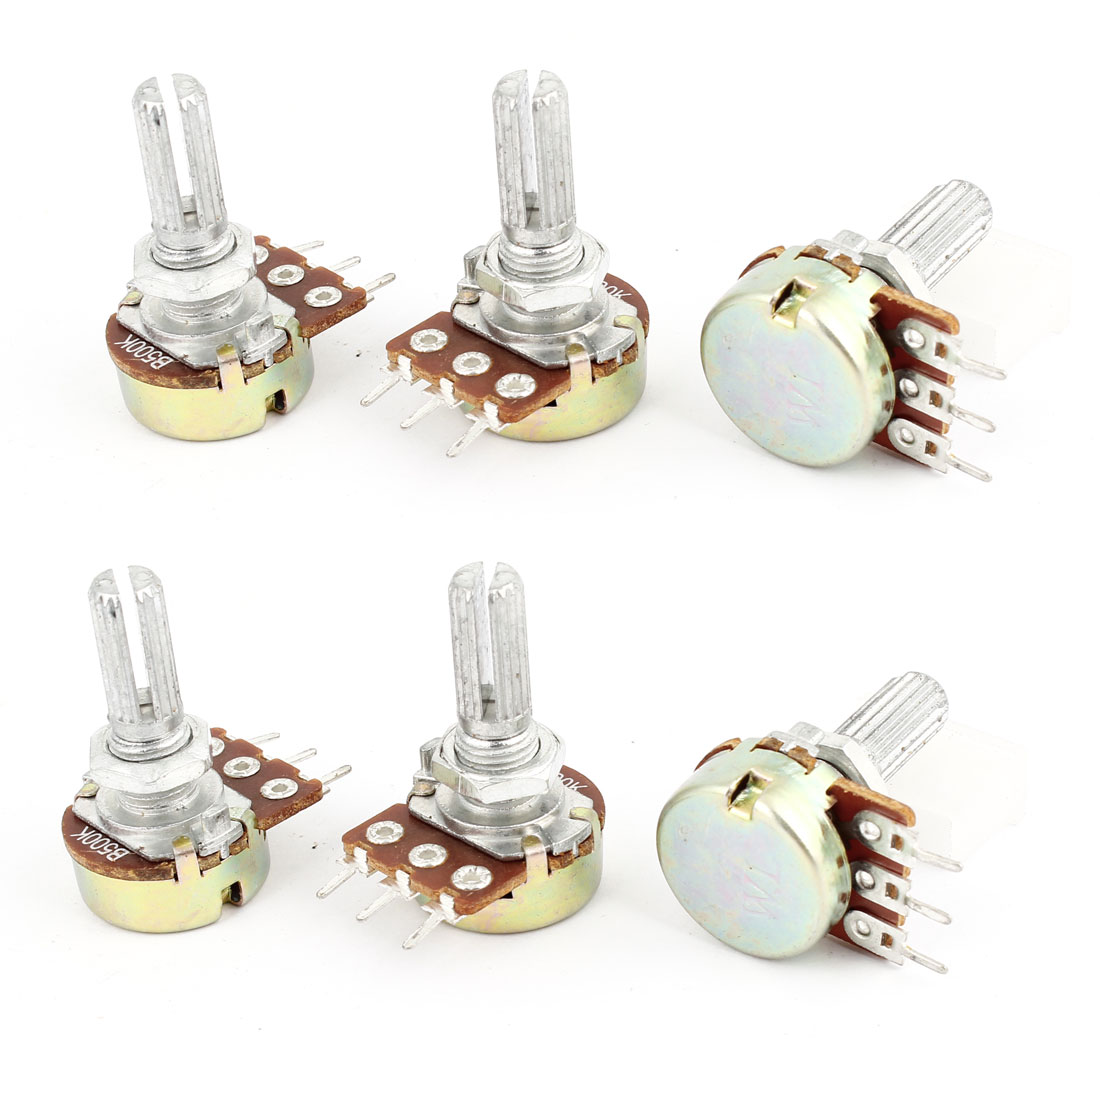 6 Pcs Top Adjustment Single Turn Shaft 3 Pins Pot Carbon Film Potentiometer B500K